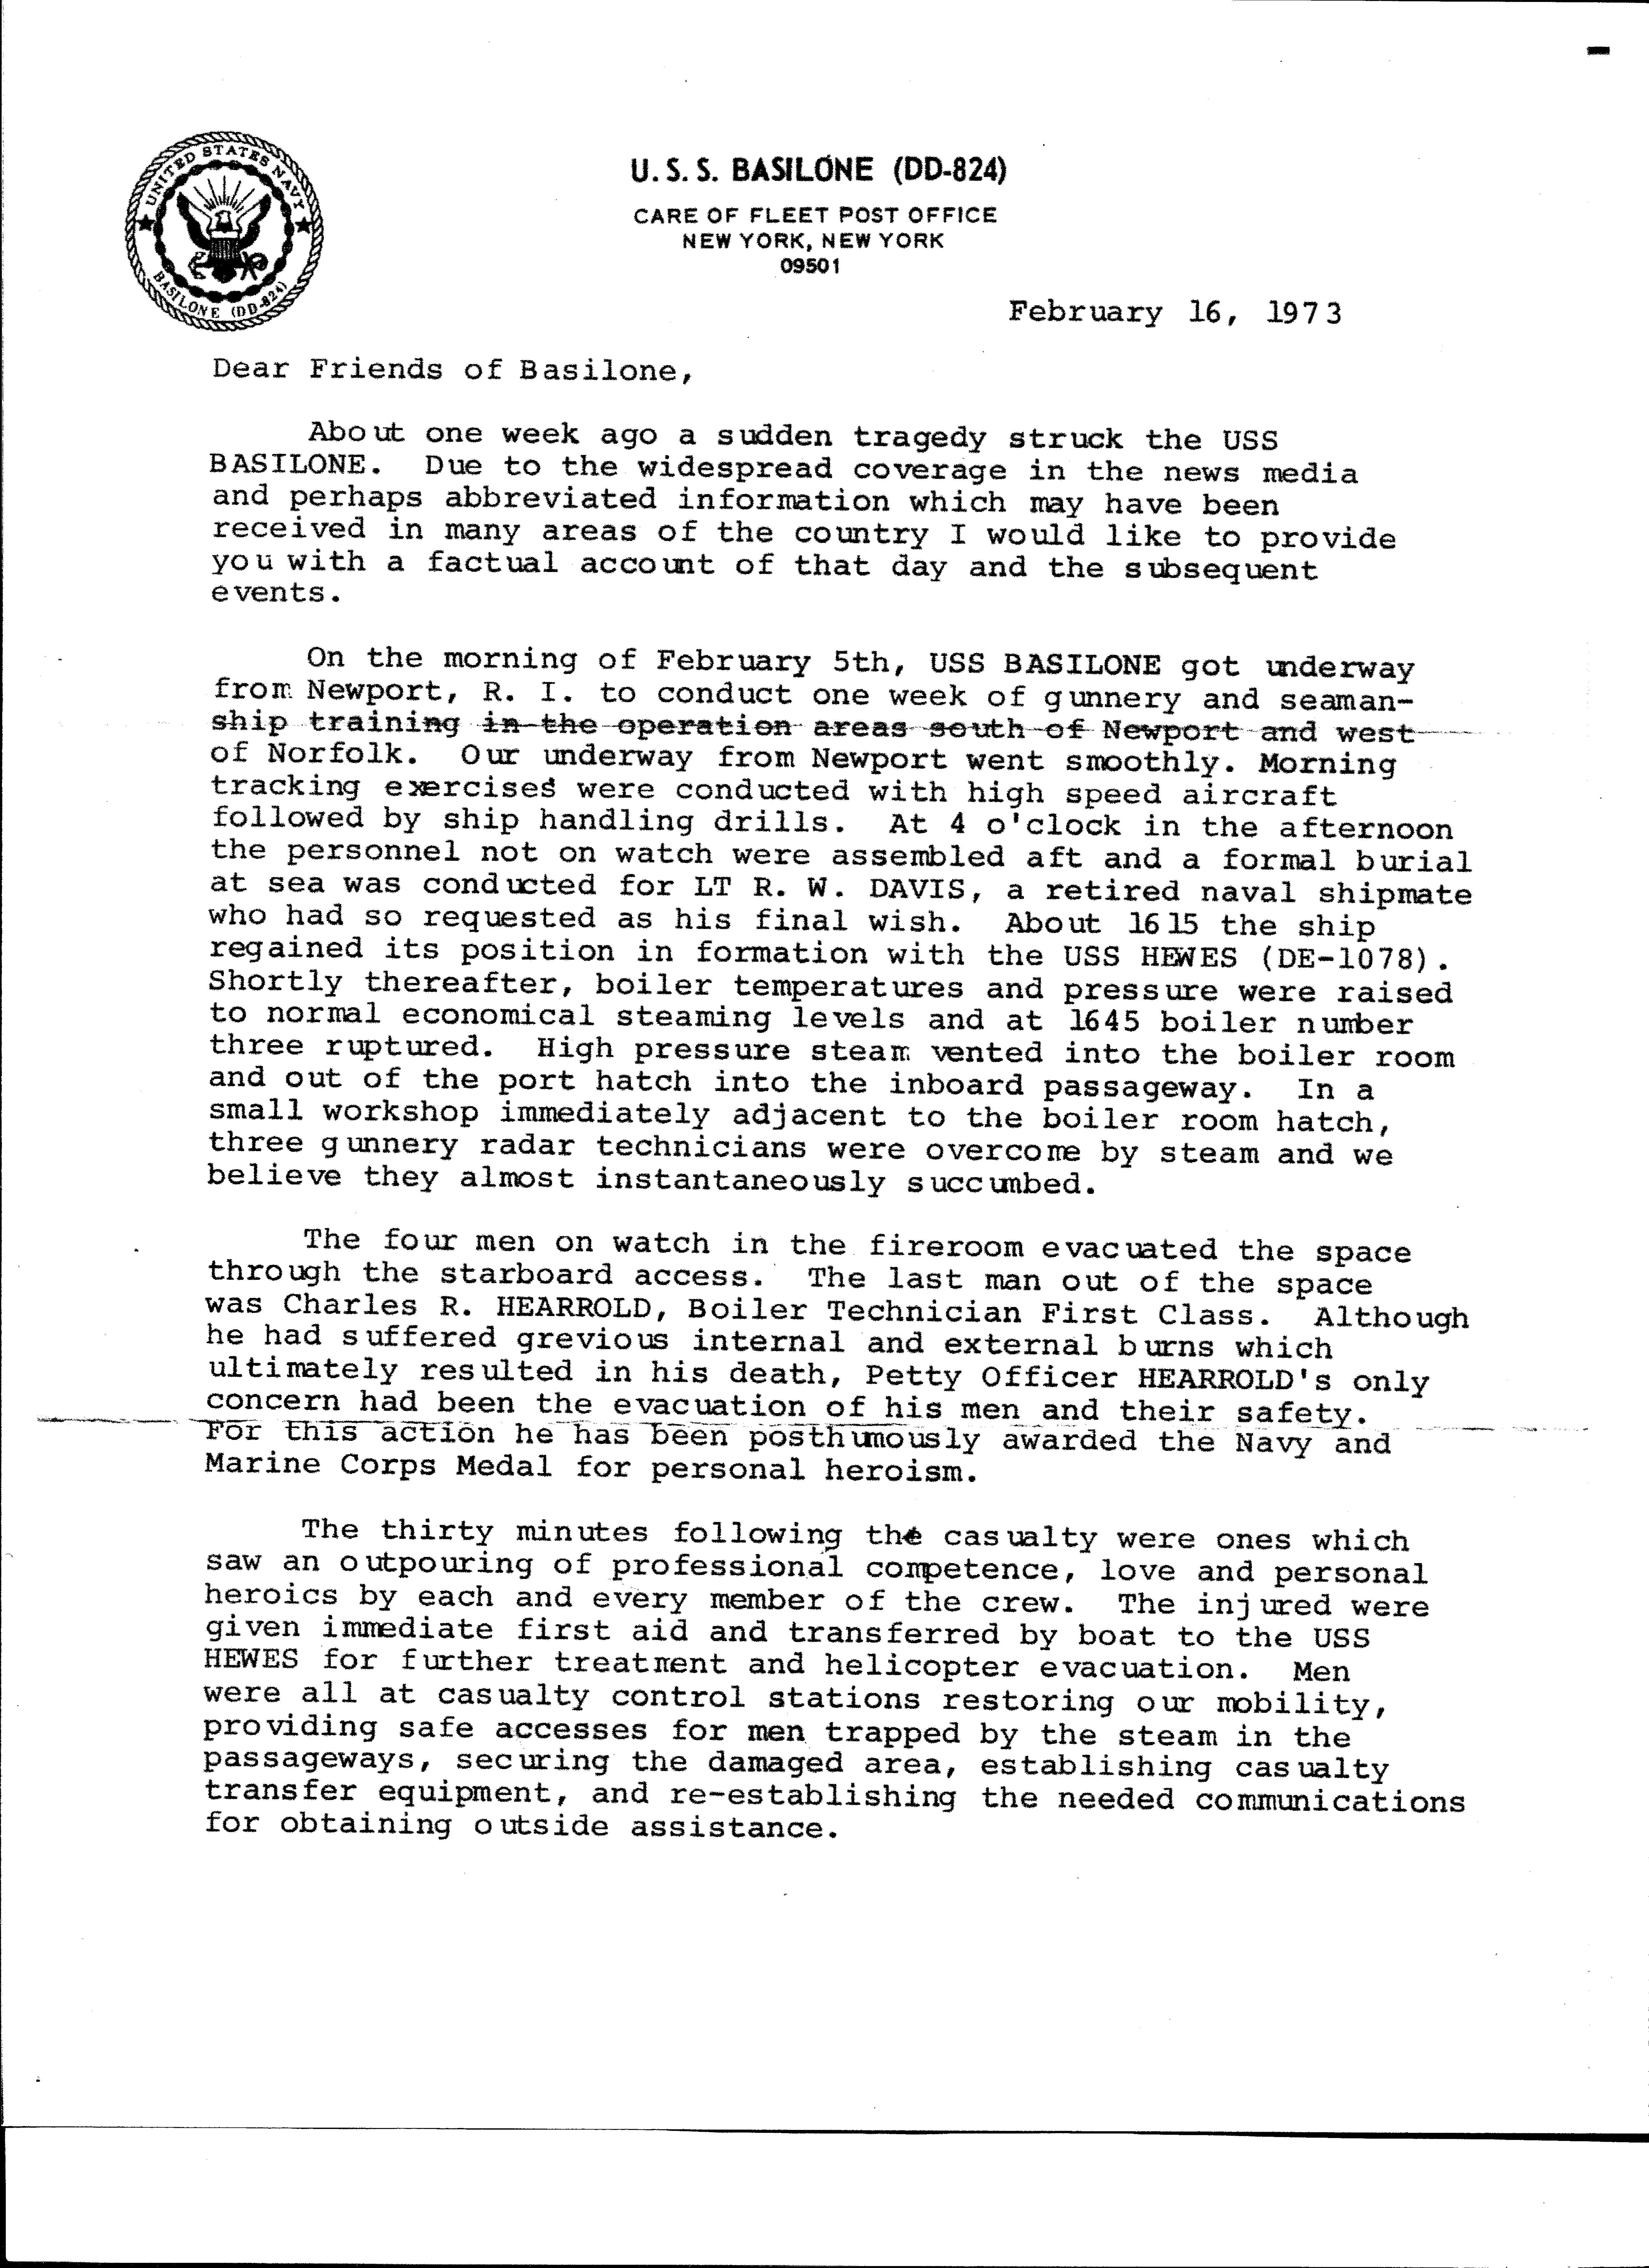 Captain Townley's Accident Letter page 1